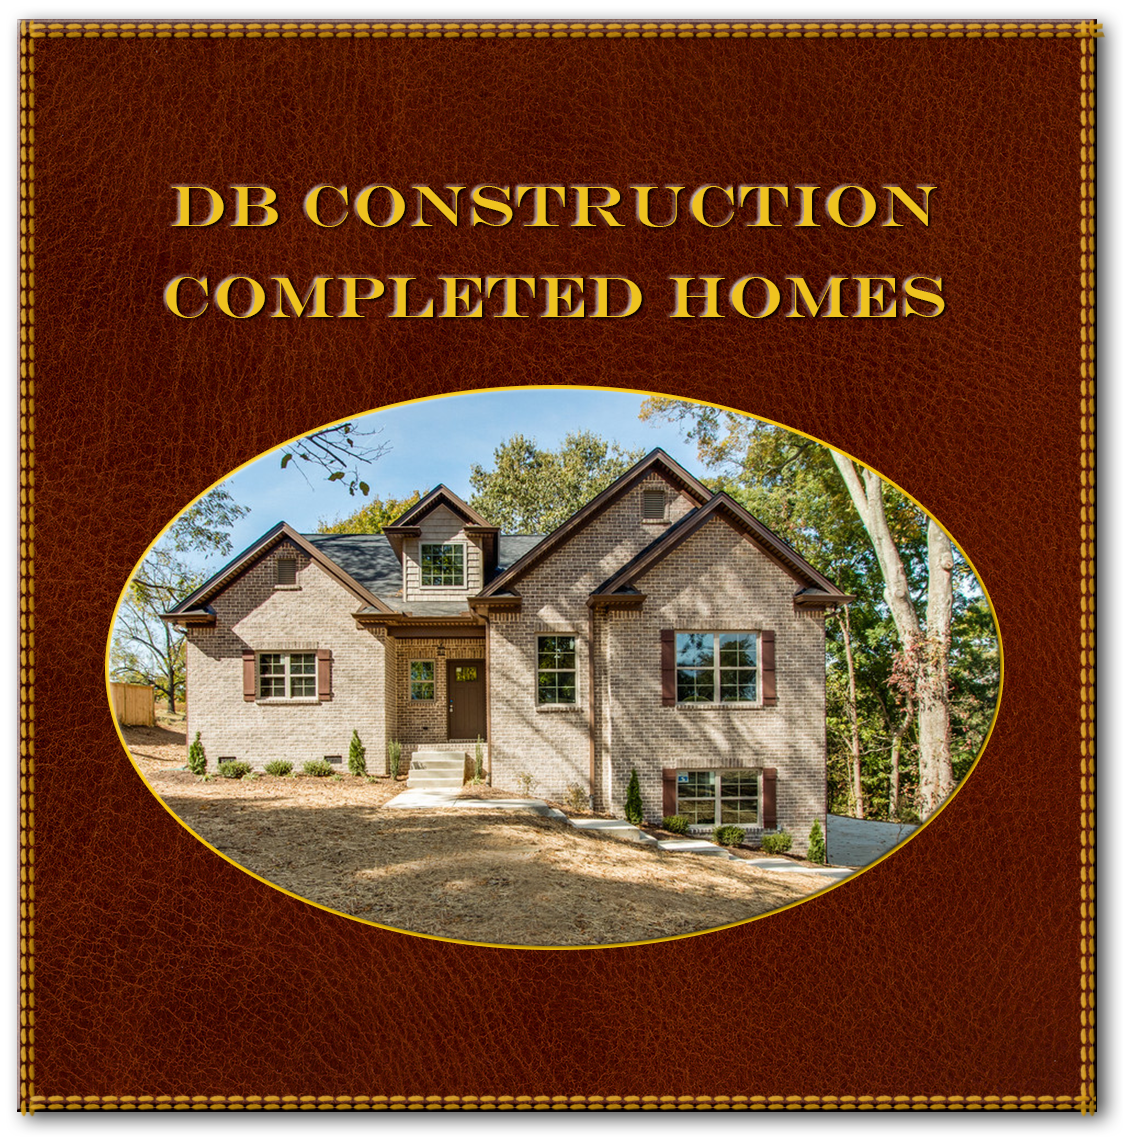 DB Construction Recently Completed Homes